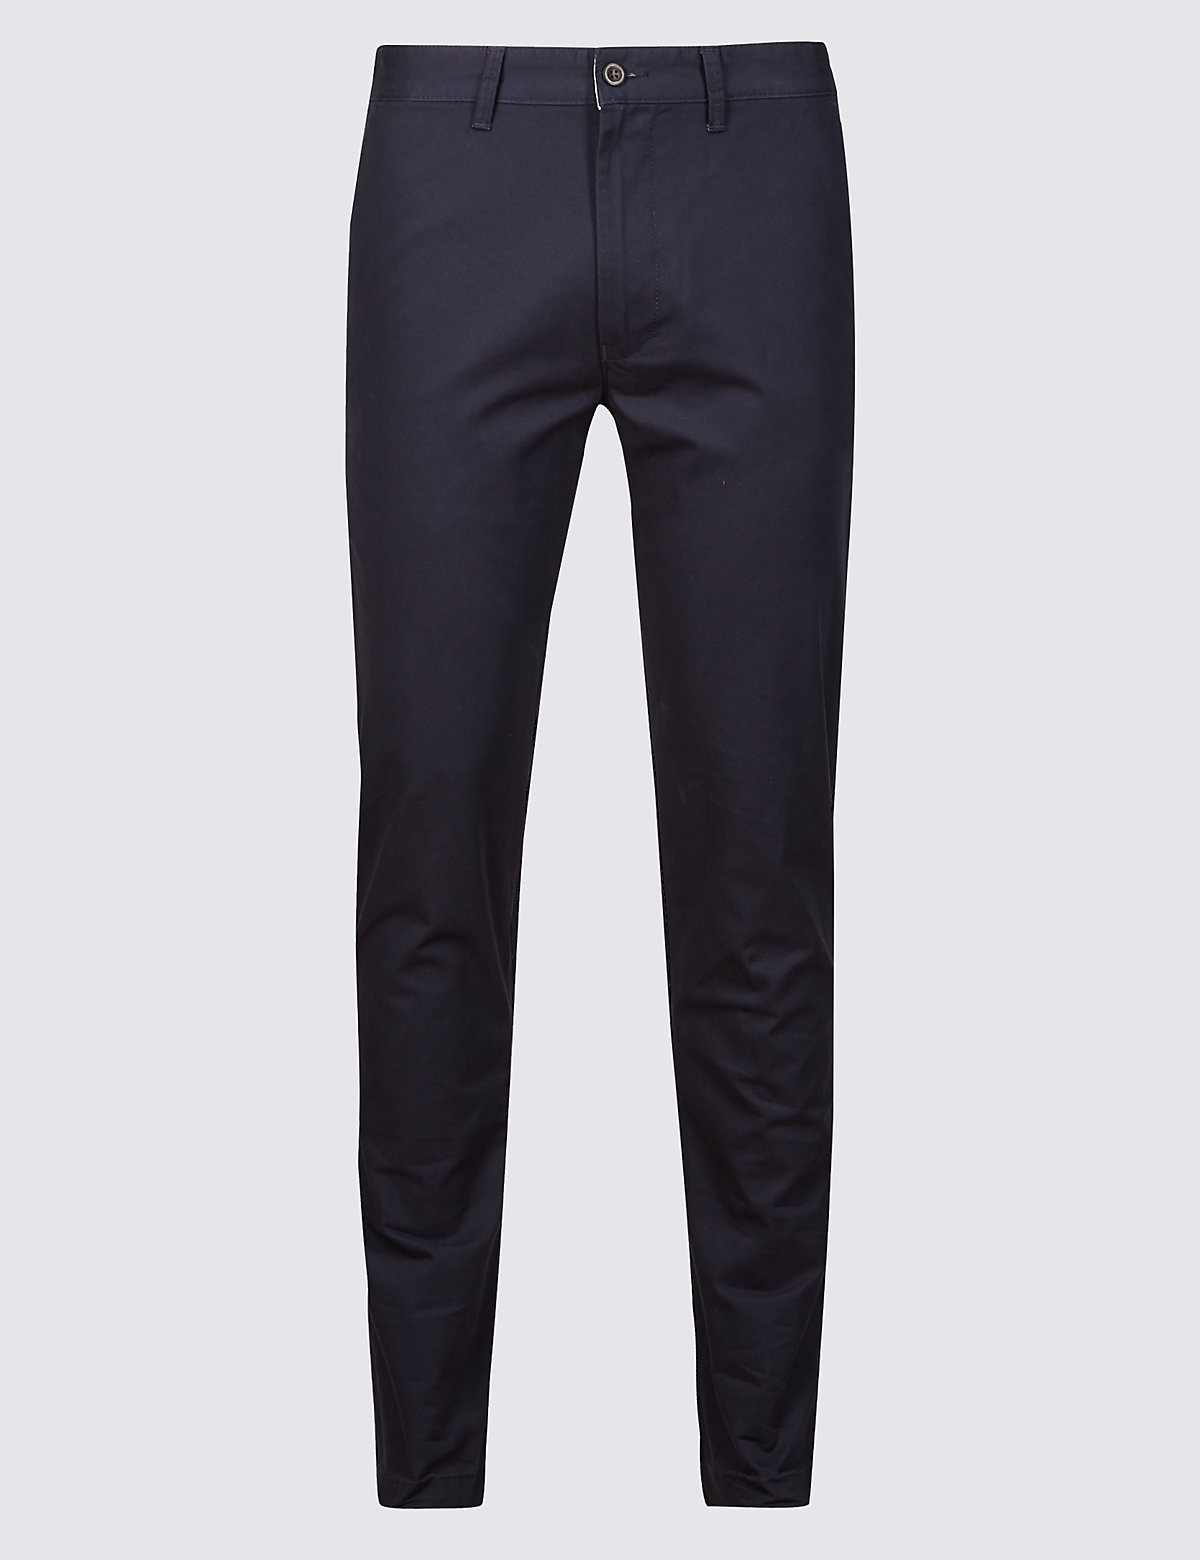 Marks & Spencer Navy Skinny Fit Pure Cotton Chinos